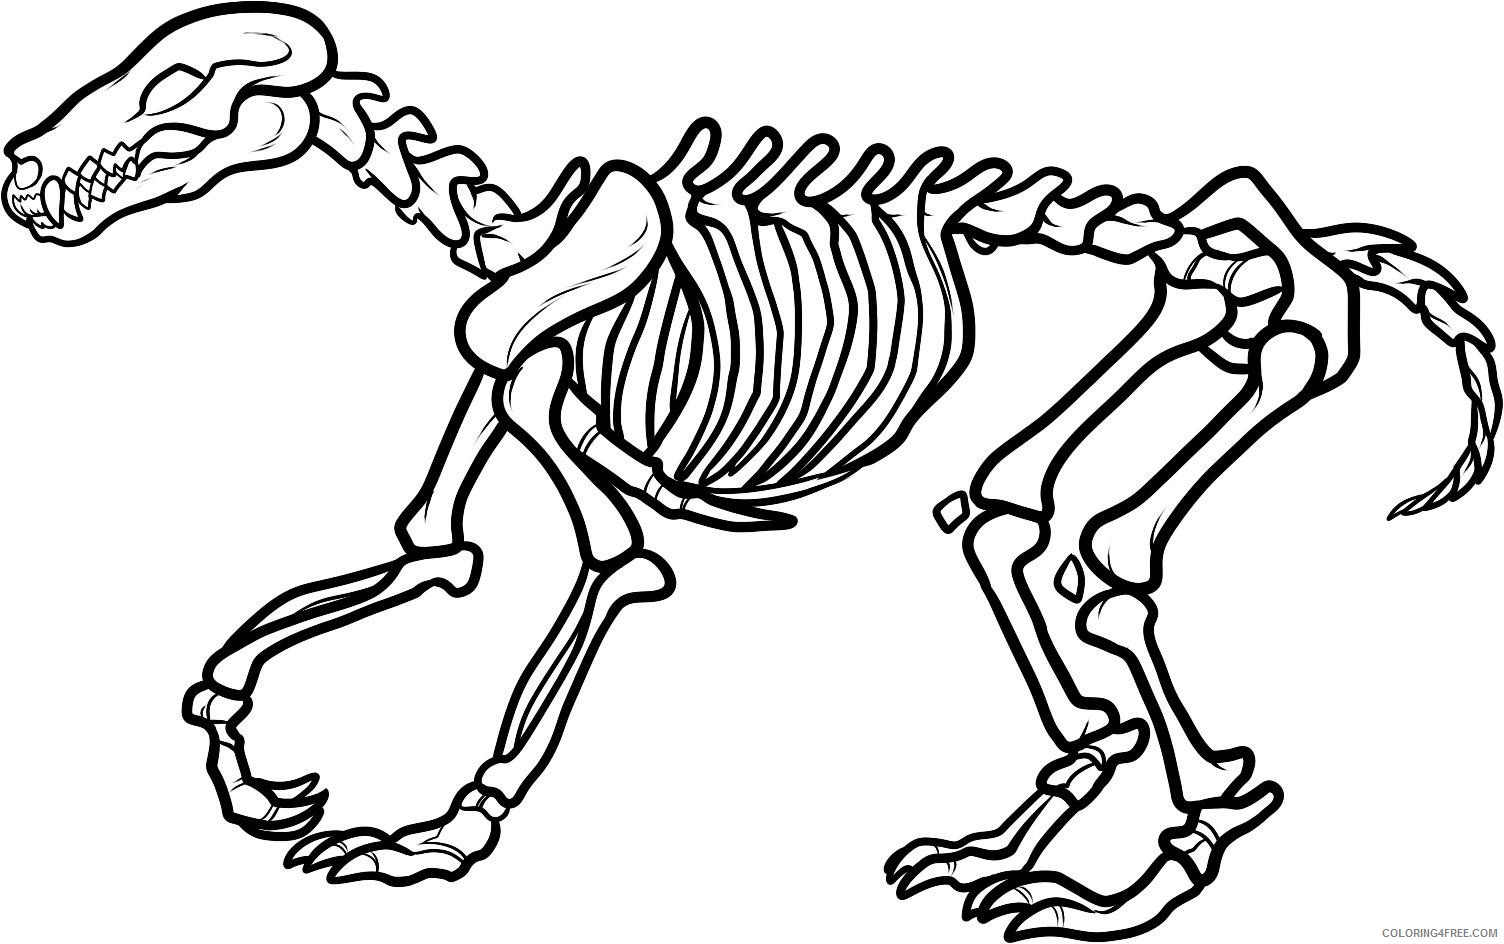 Black and White Dinosaur Coloring Pages dinosaur skeleton page Printable Coloring4free